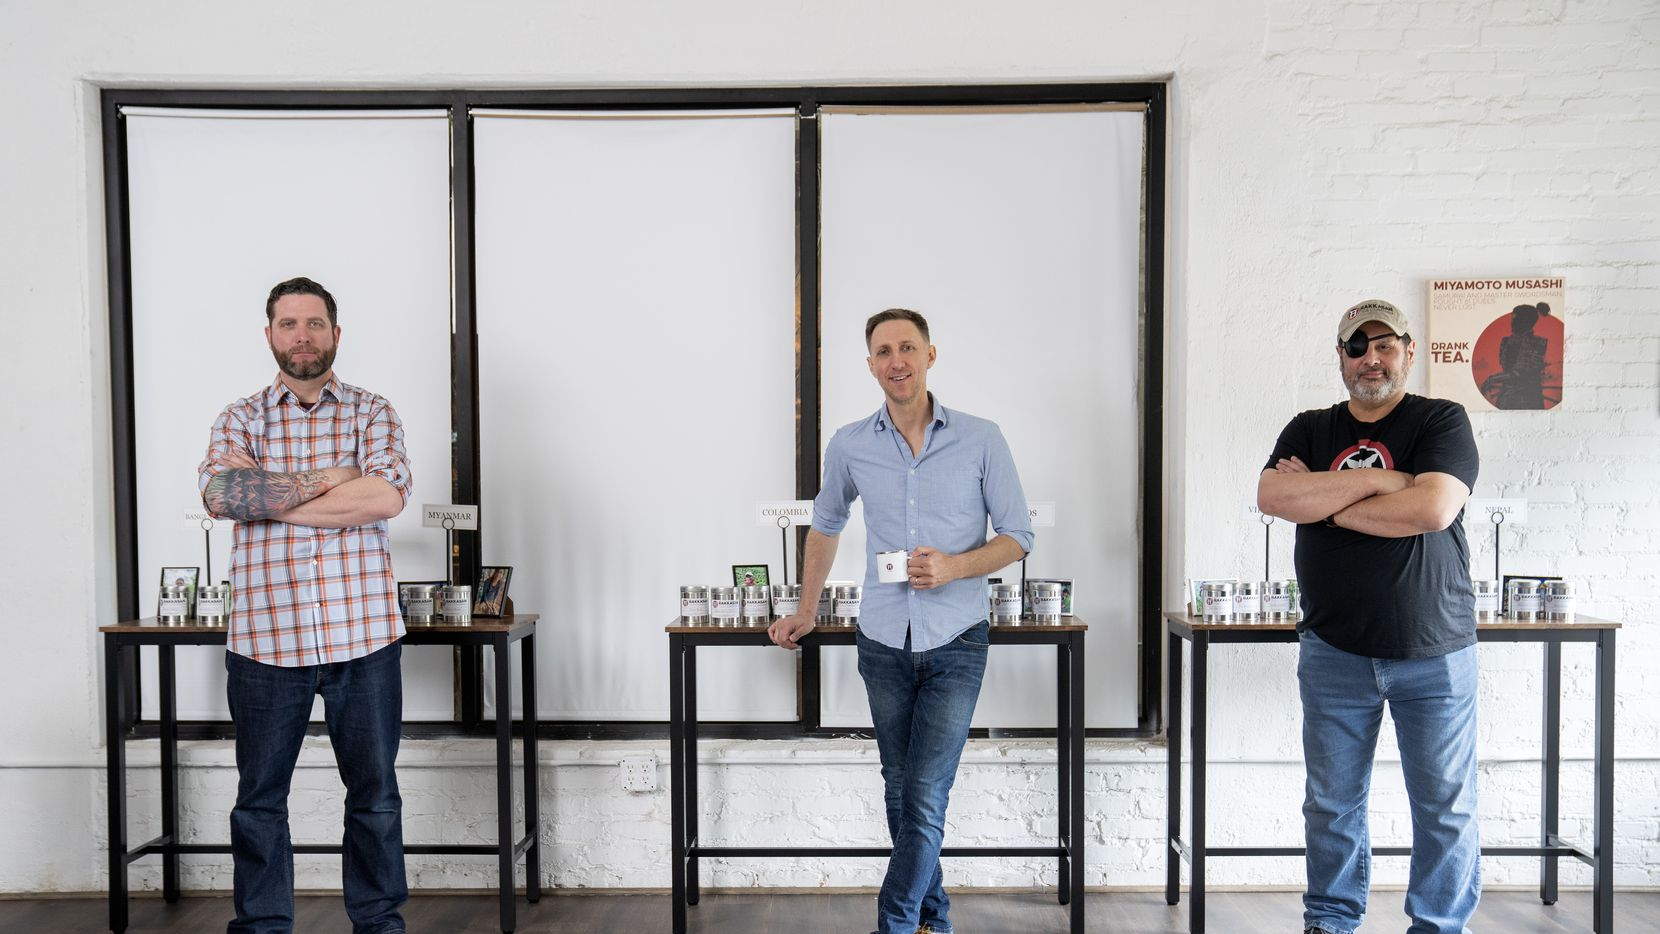 TK Kamauf, Brandon Friedman and Lance John, left to right, pose for portraits inside their new Rakkasan Tea brick-and-mortar store near Hall Street and Ross Avenue in Dallas.